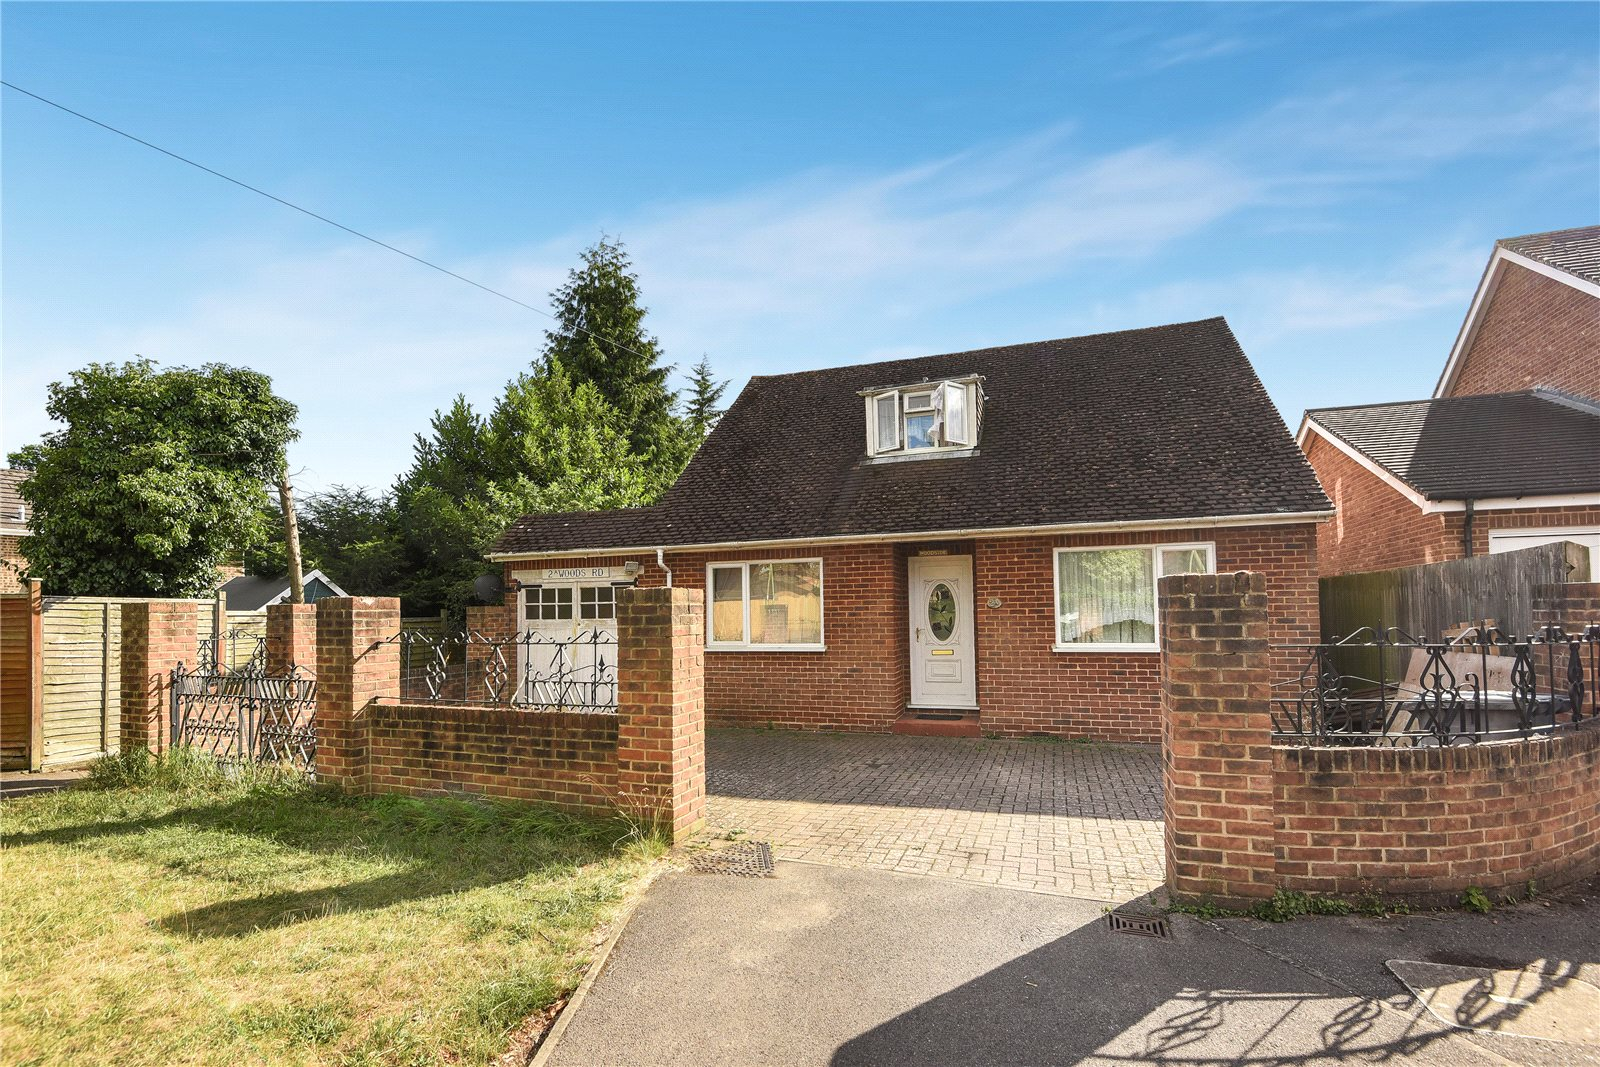 3 Bedrooms Detached Bungalow for sale in Woods Road, Caversham, Reading, Berkshire, RG4